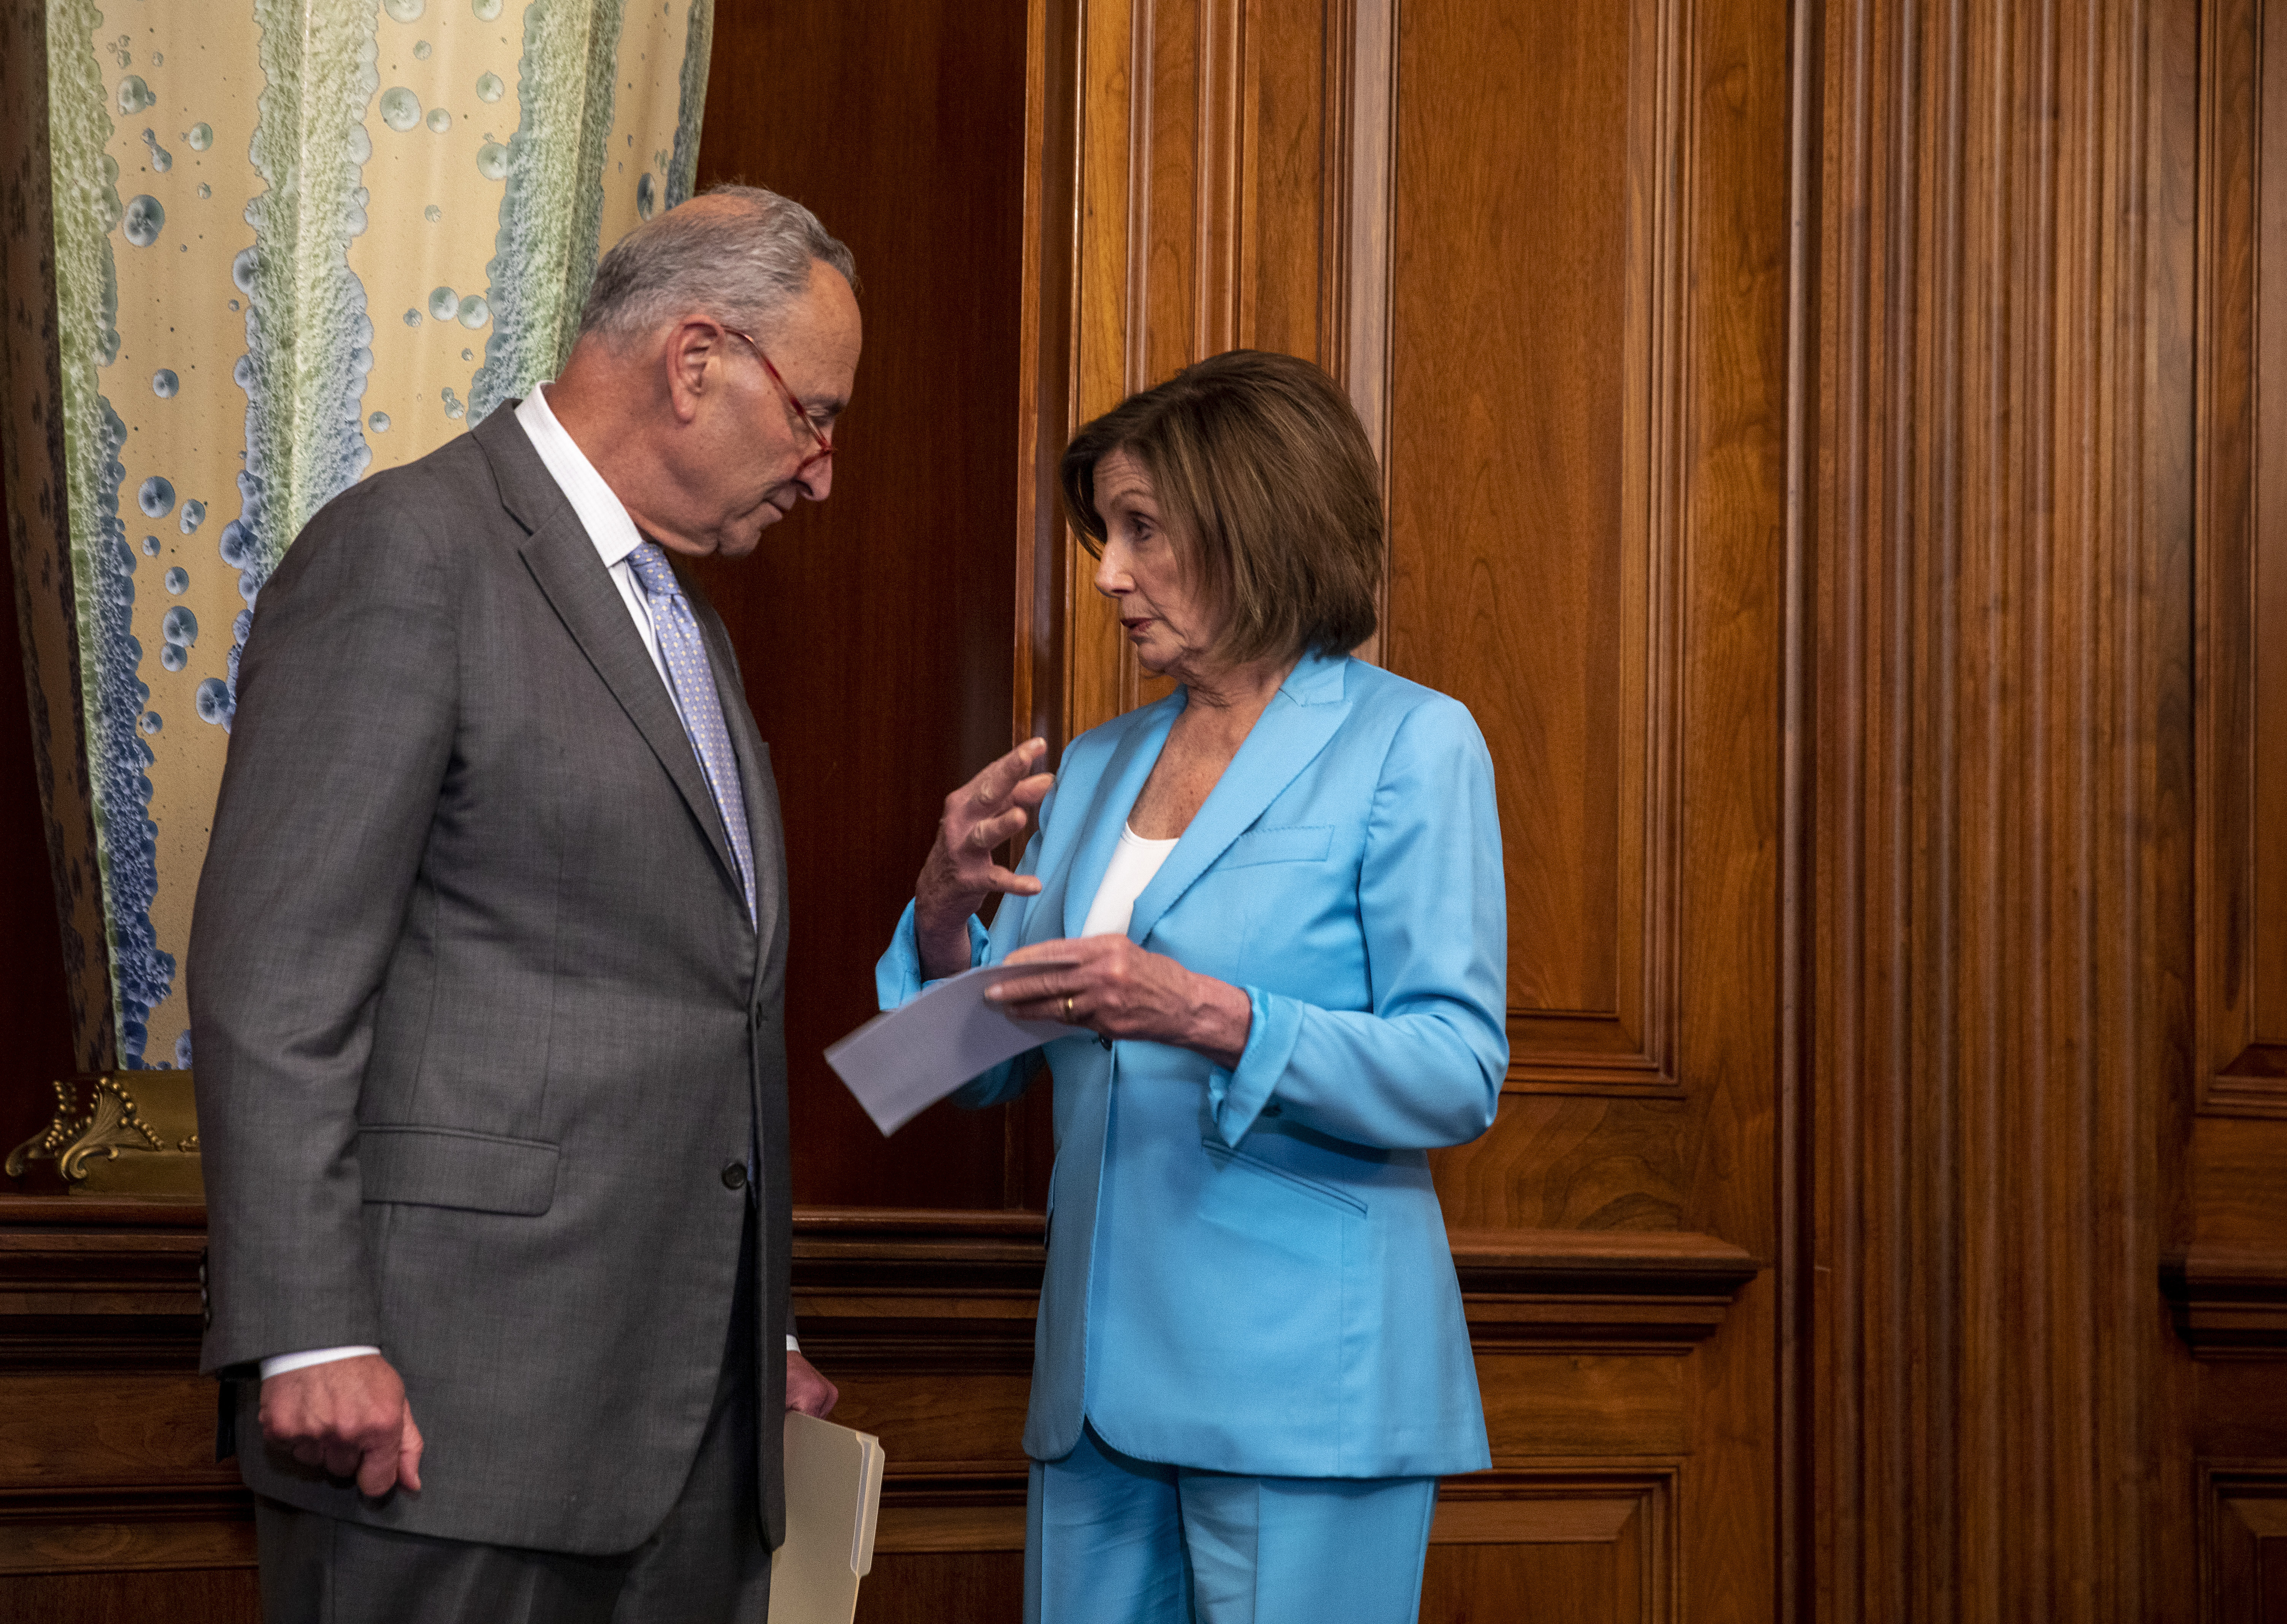 U.S. Senate Minority Leader Chuck Schumer and U.S. House Speaker Nancy Pelosi chat at a press conference on passing the America's Elections Act on June 26, 2019 in Washington, DC. (Photo by Tasos Katopodis/Getty Images)